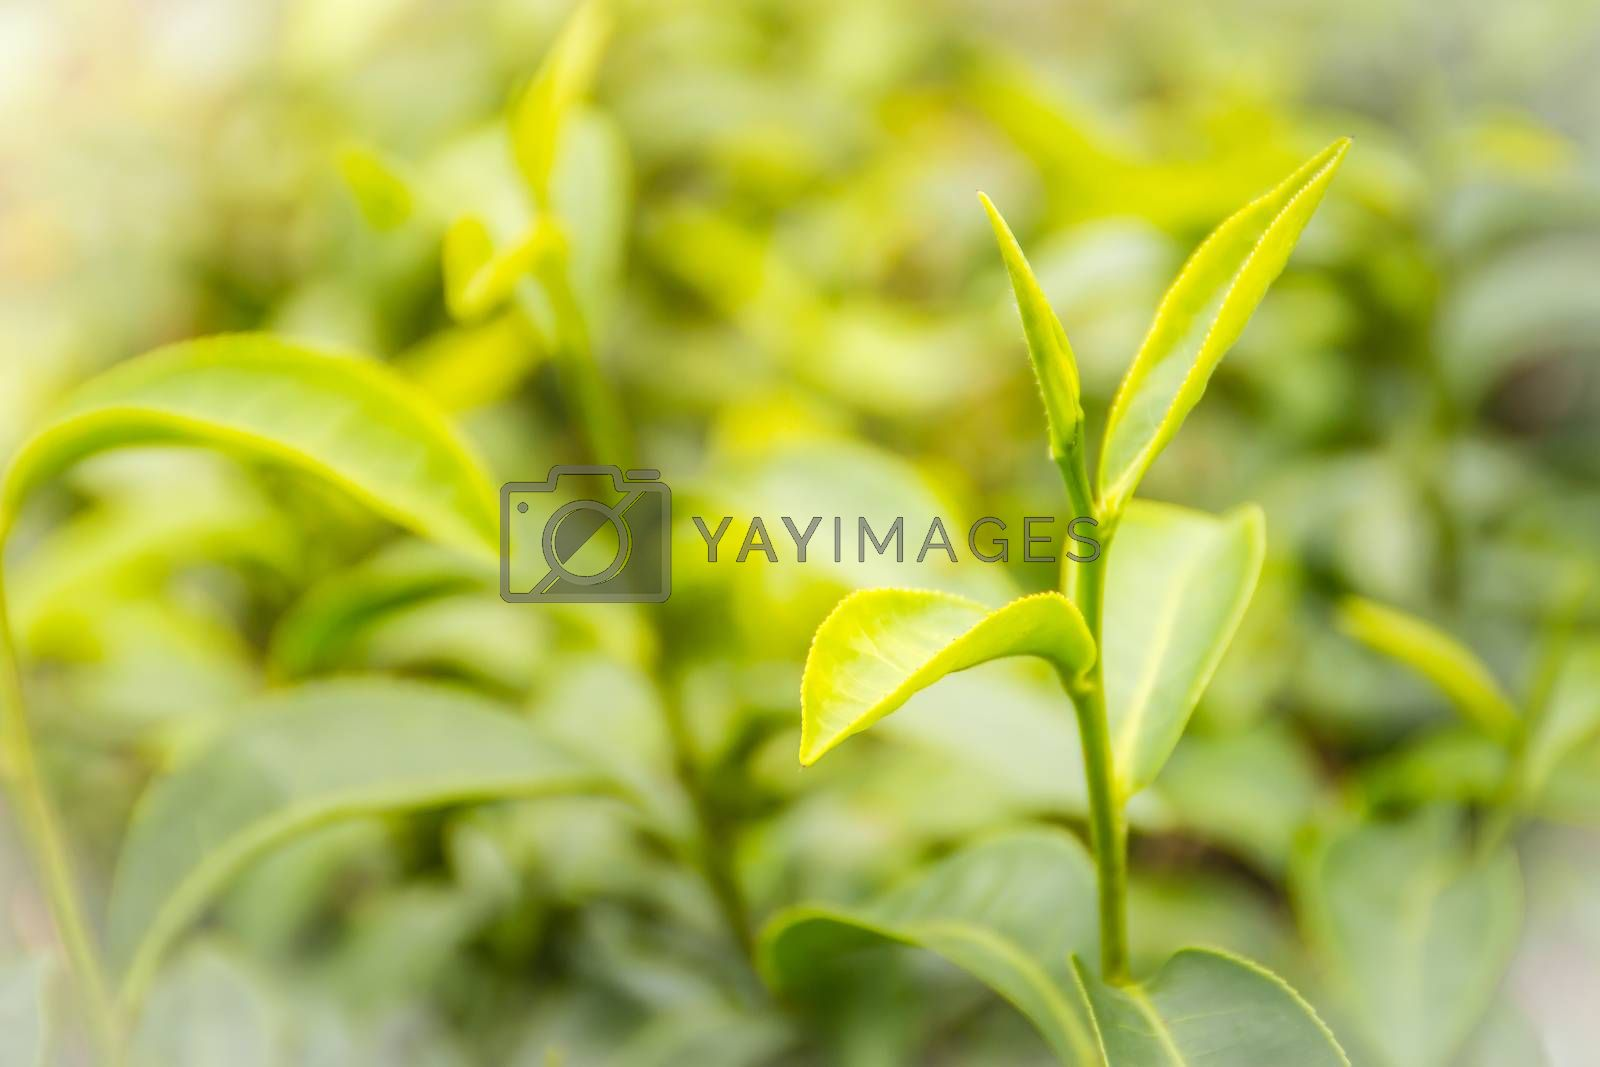 Young shoots of green tea leaves in the morning before harvesting. The green tea harvested in taste and value from the young shoots leaves is known to produce the highest quality green tea leaves. by kwhisky